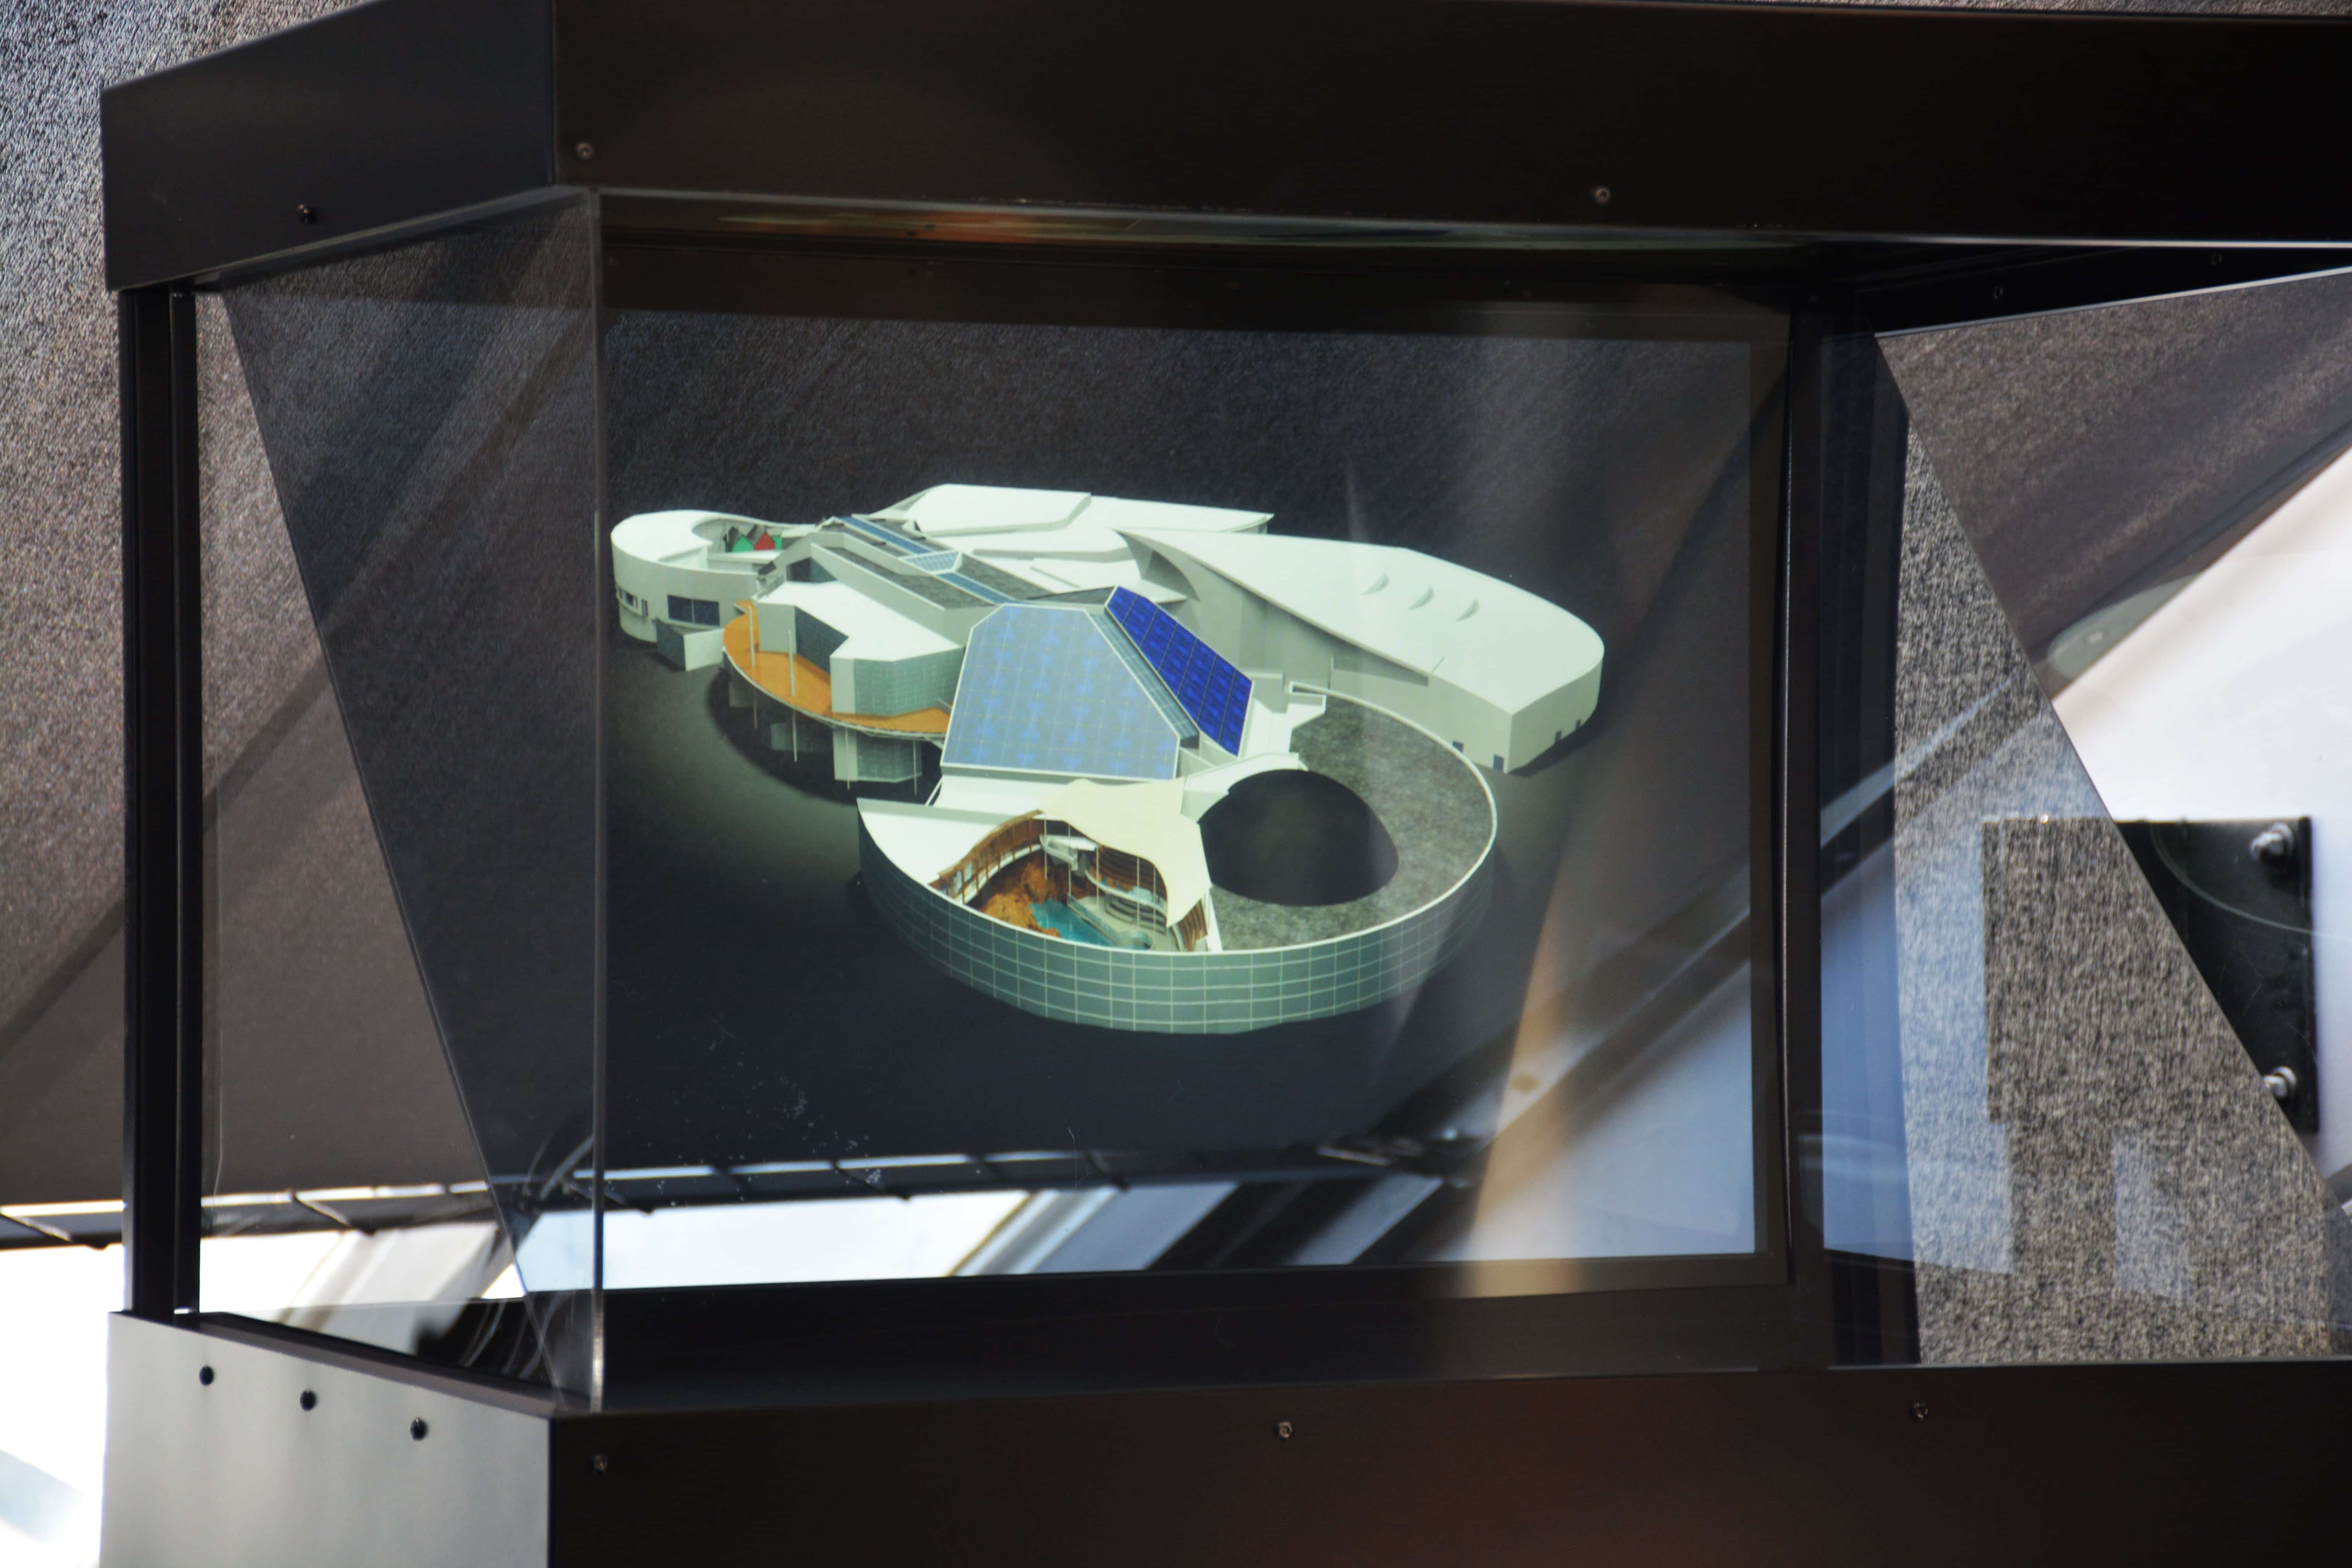 IRIS Holographic projector and 3D Holographic creation Holusion